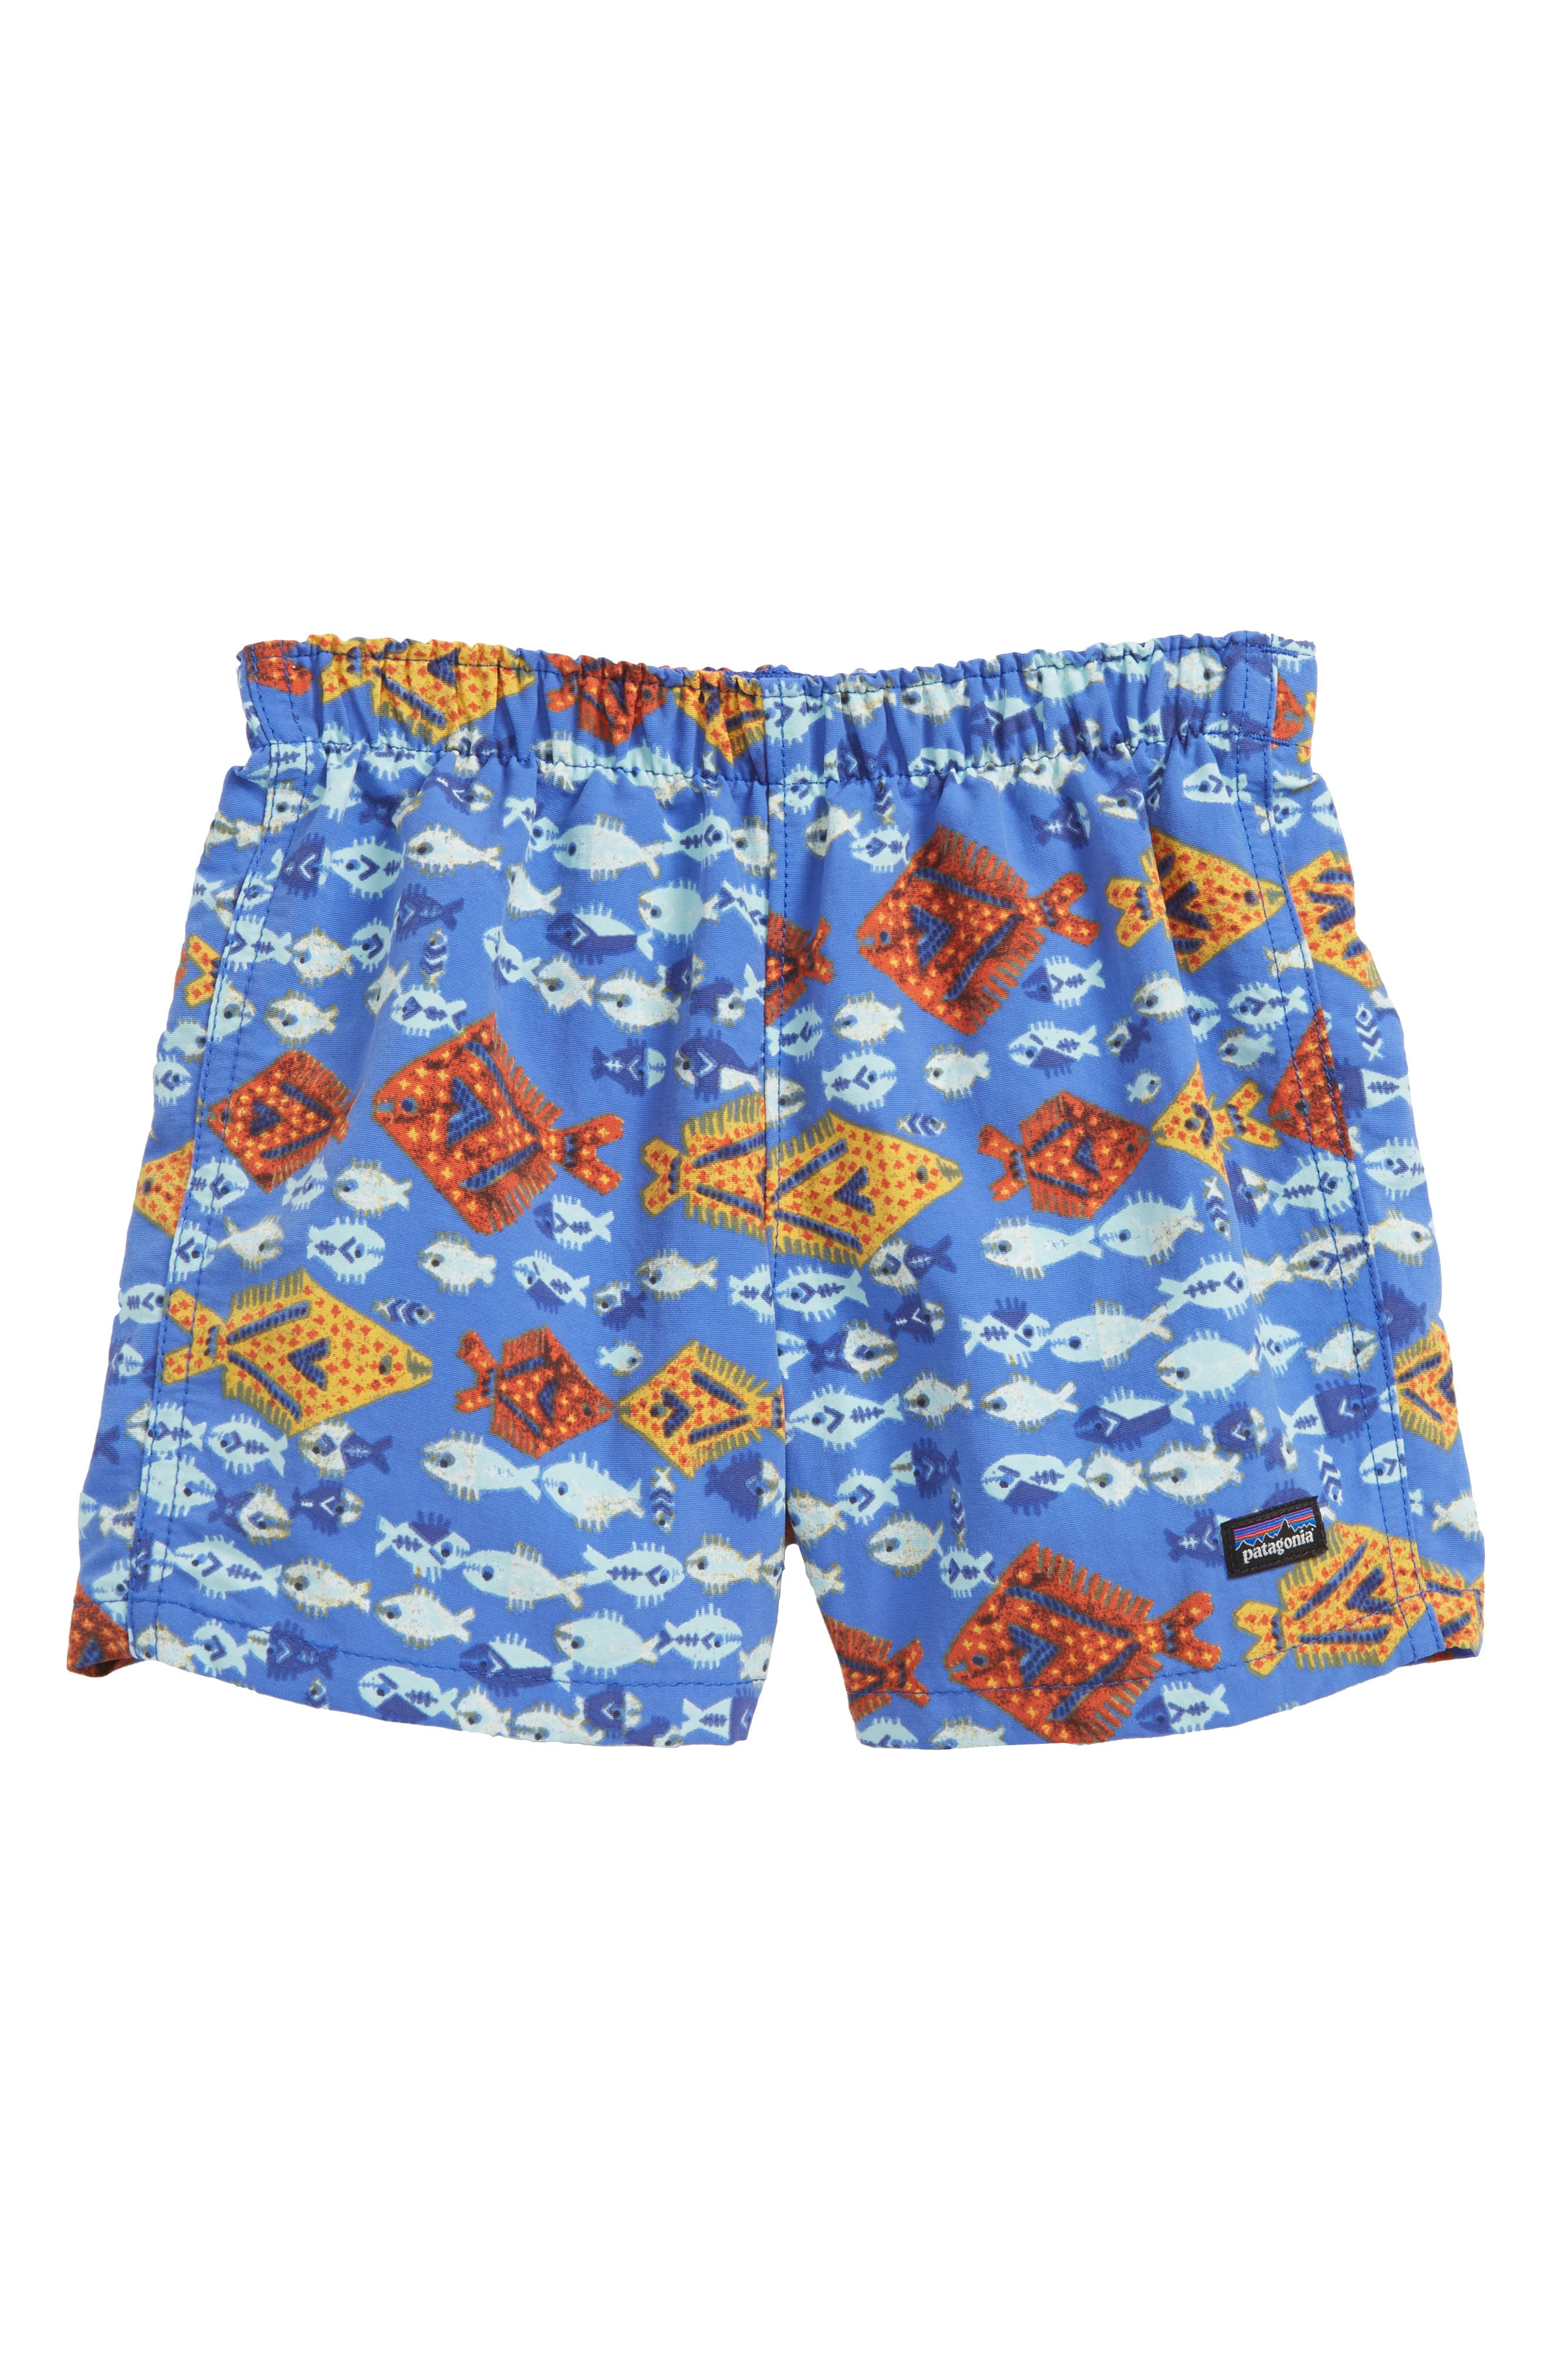 Baggies<sup>™</sup> Shorts,                         Main,                         color,